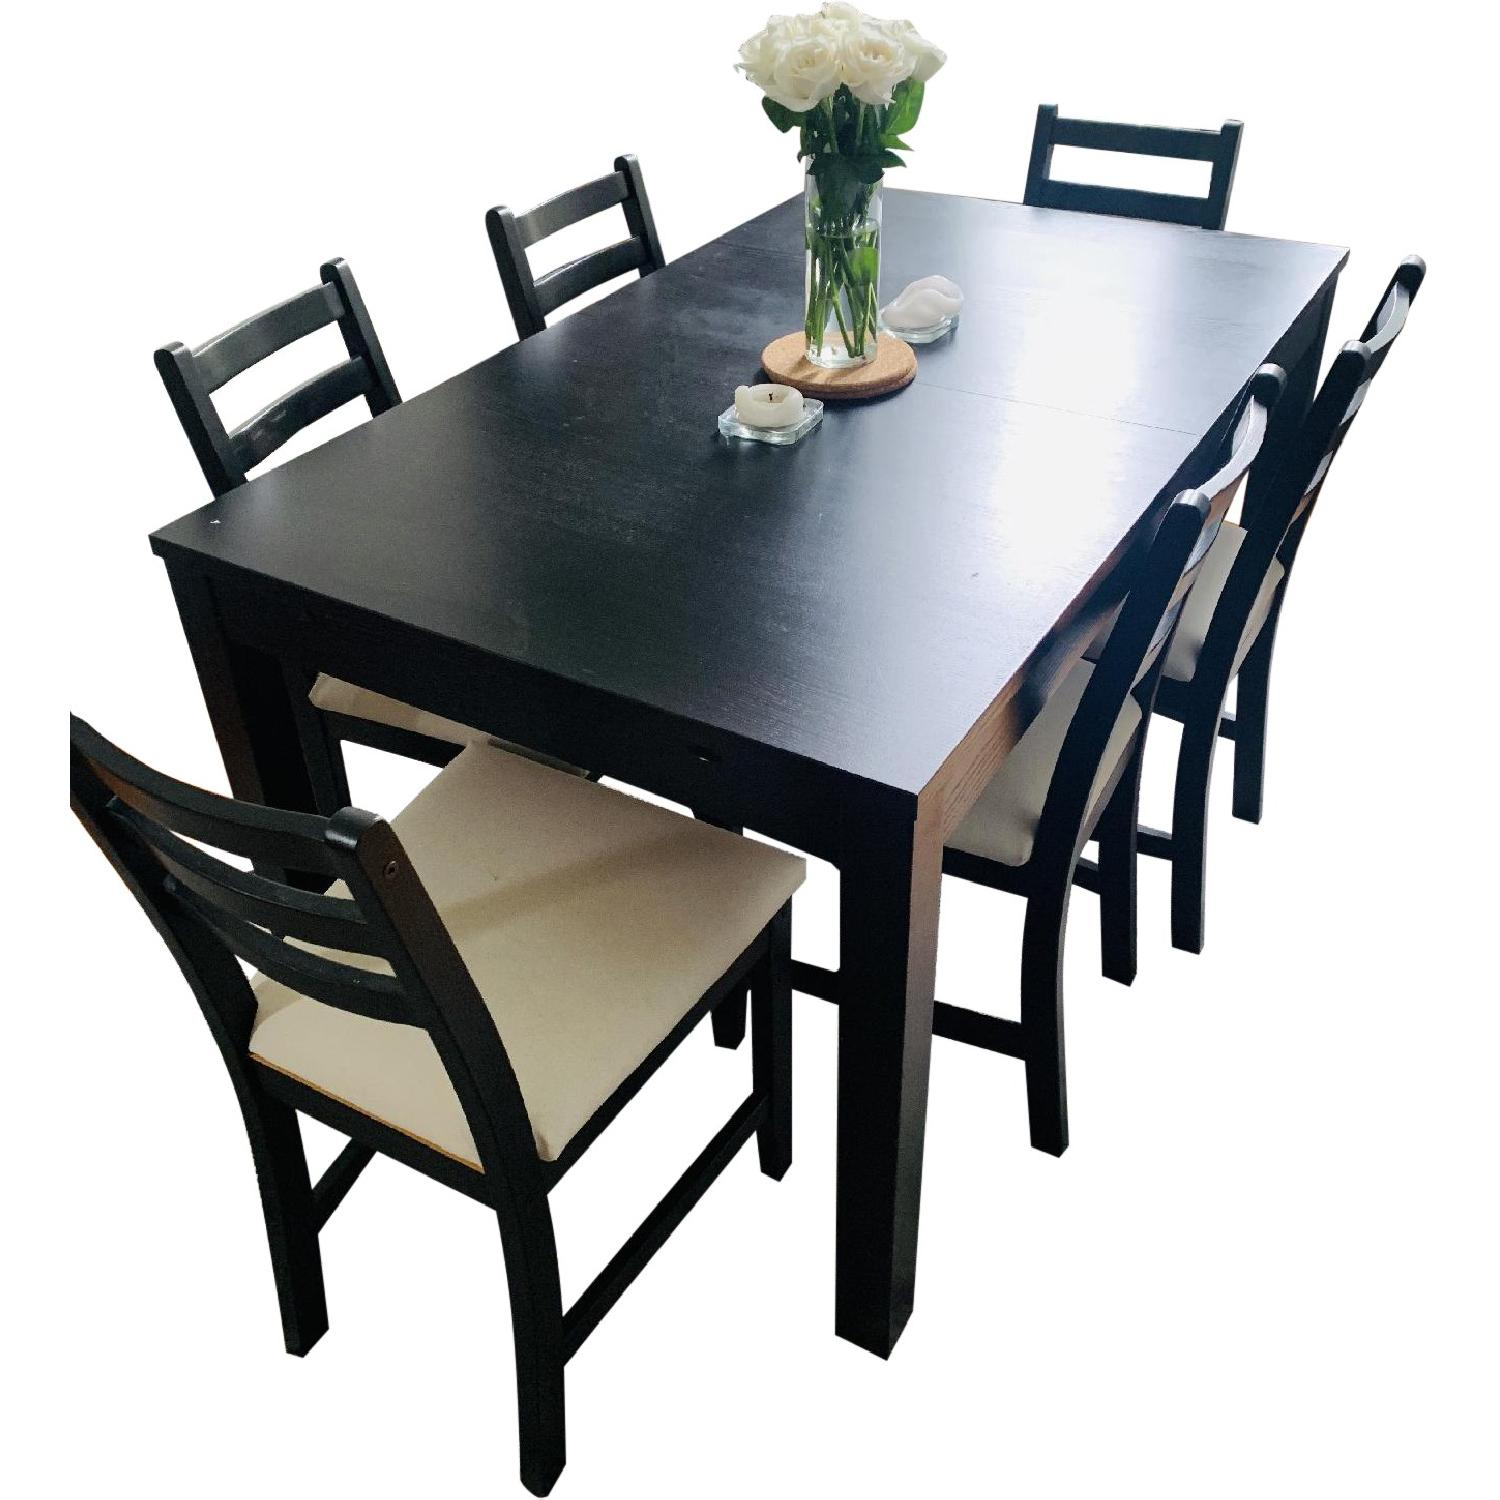 Ikea Bjursta Extendable Table w/ 6 Lerhamn Black Chairs